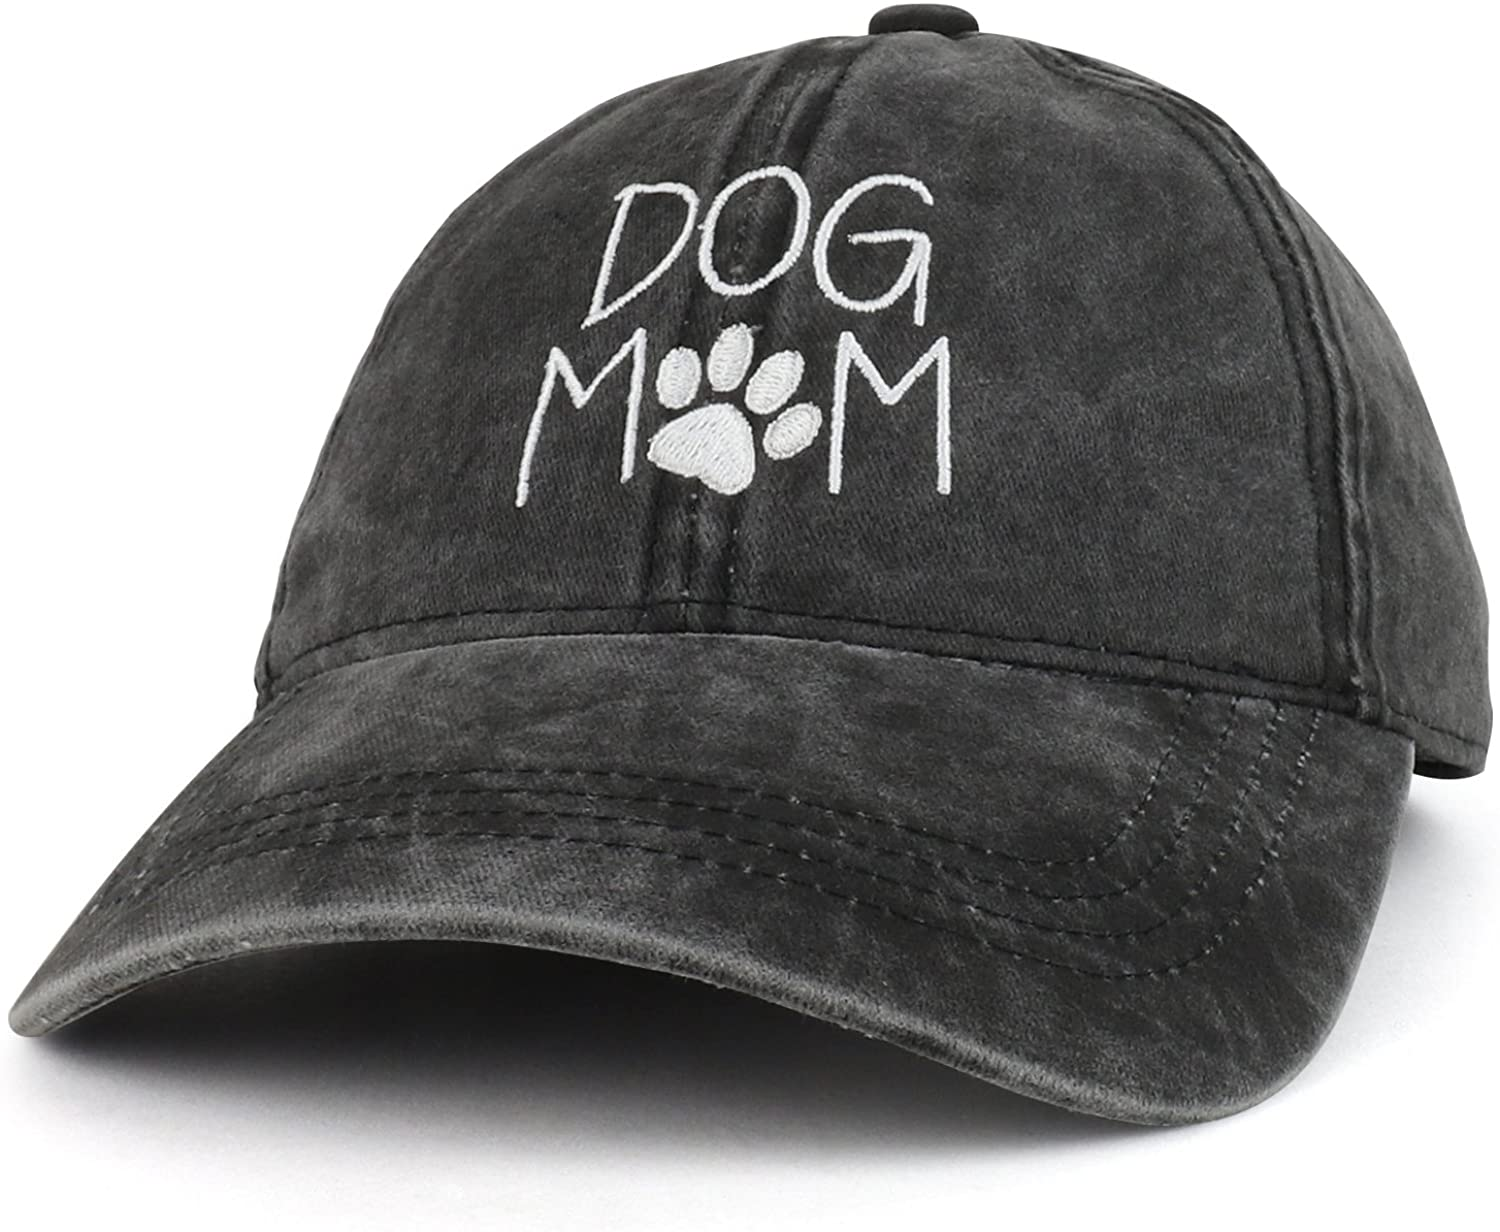 Trendy Apparel Shop Dog Mom Text Embroidered Washed Cotton Baseball Cap